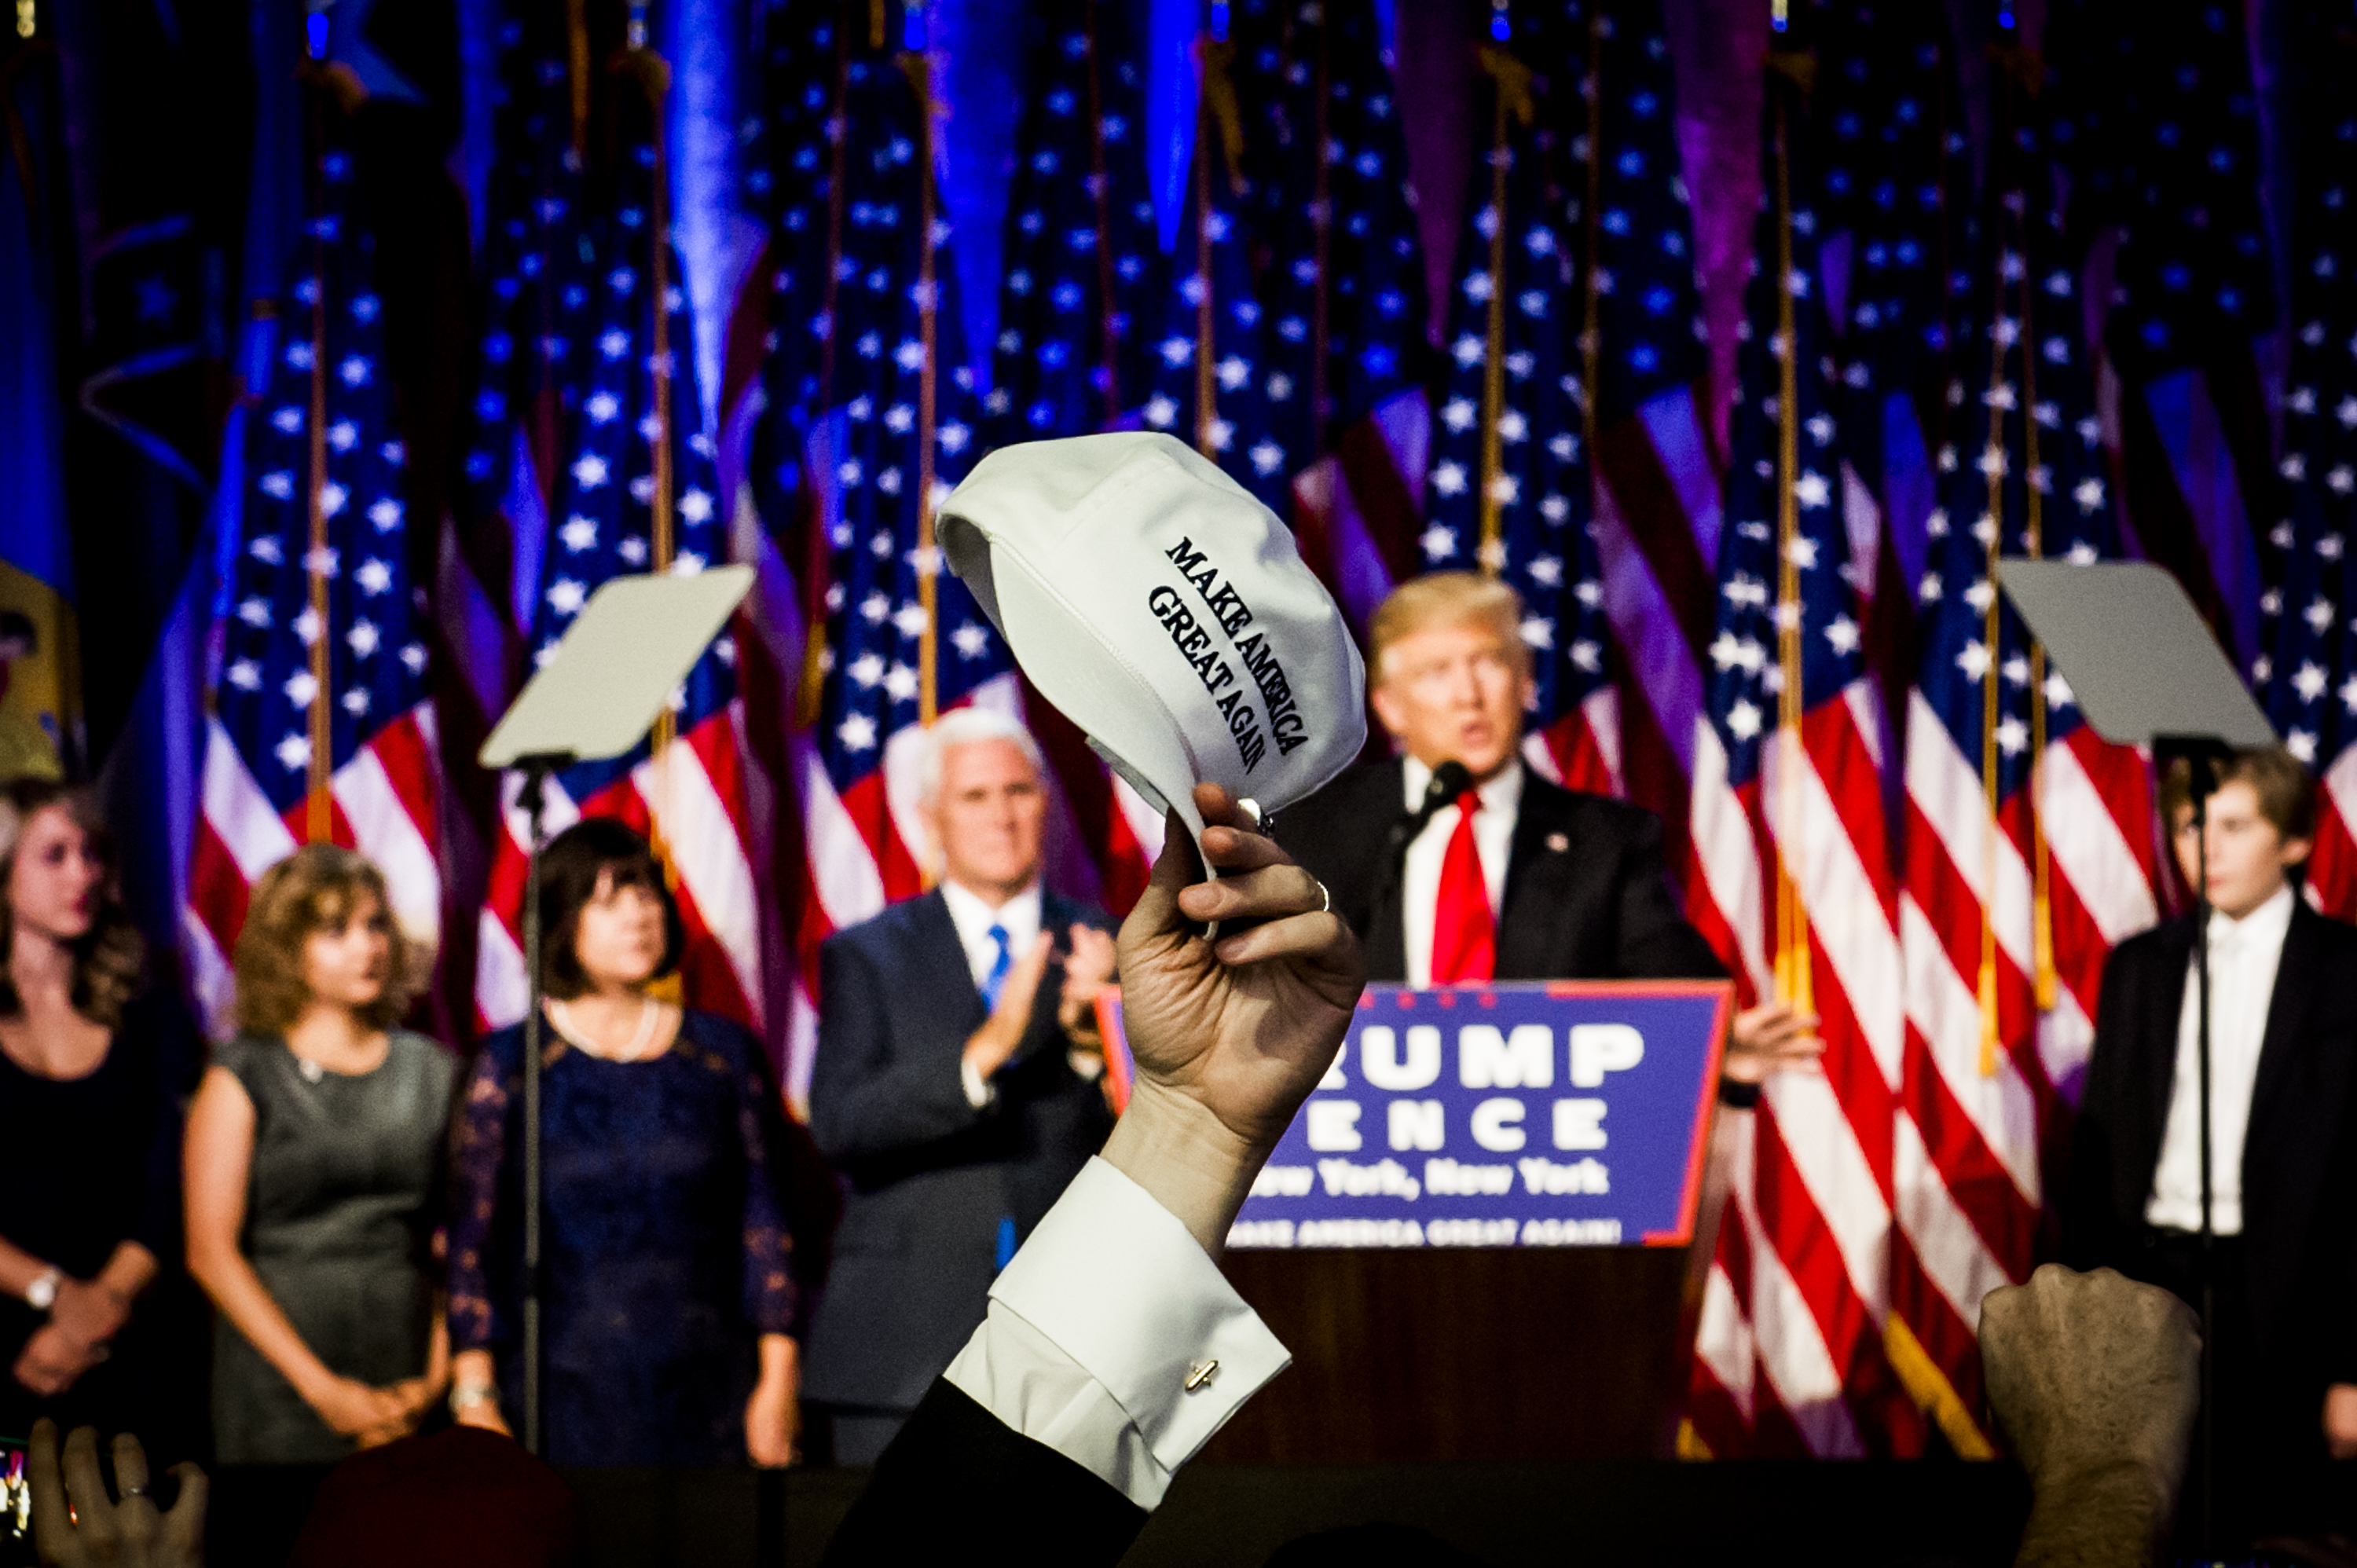 President-elect Donald Trump speaks during his Victory Party on Tuesday, Nov. 8, 2016 in New York's Manhattan borough.